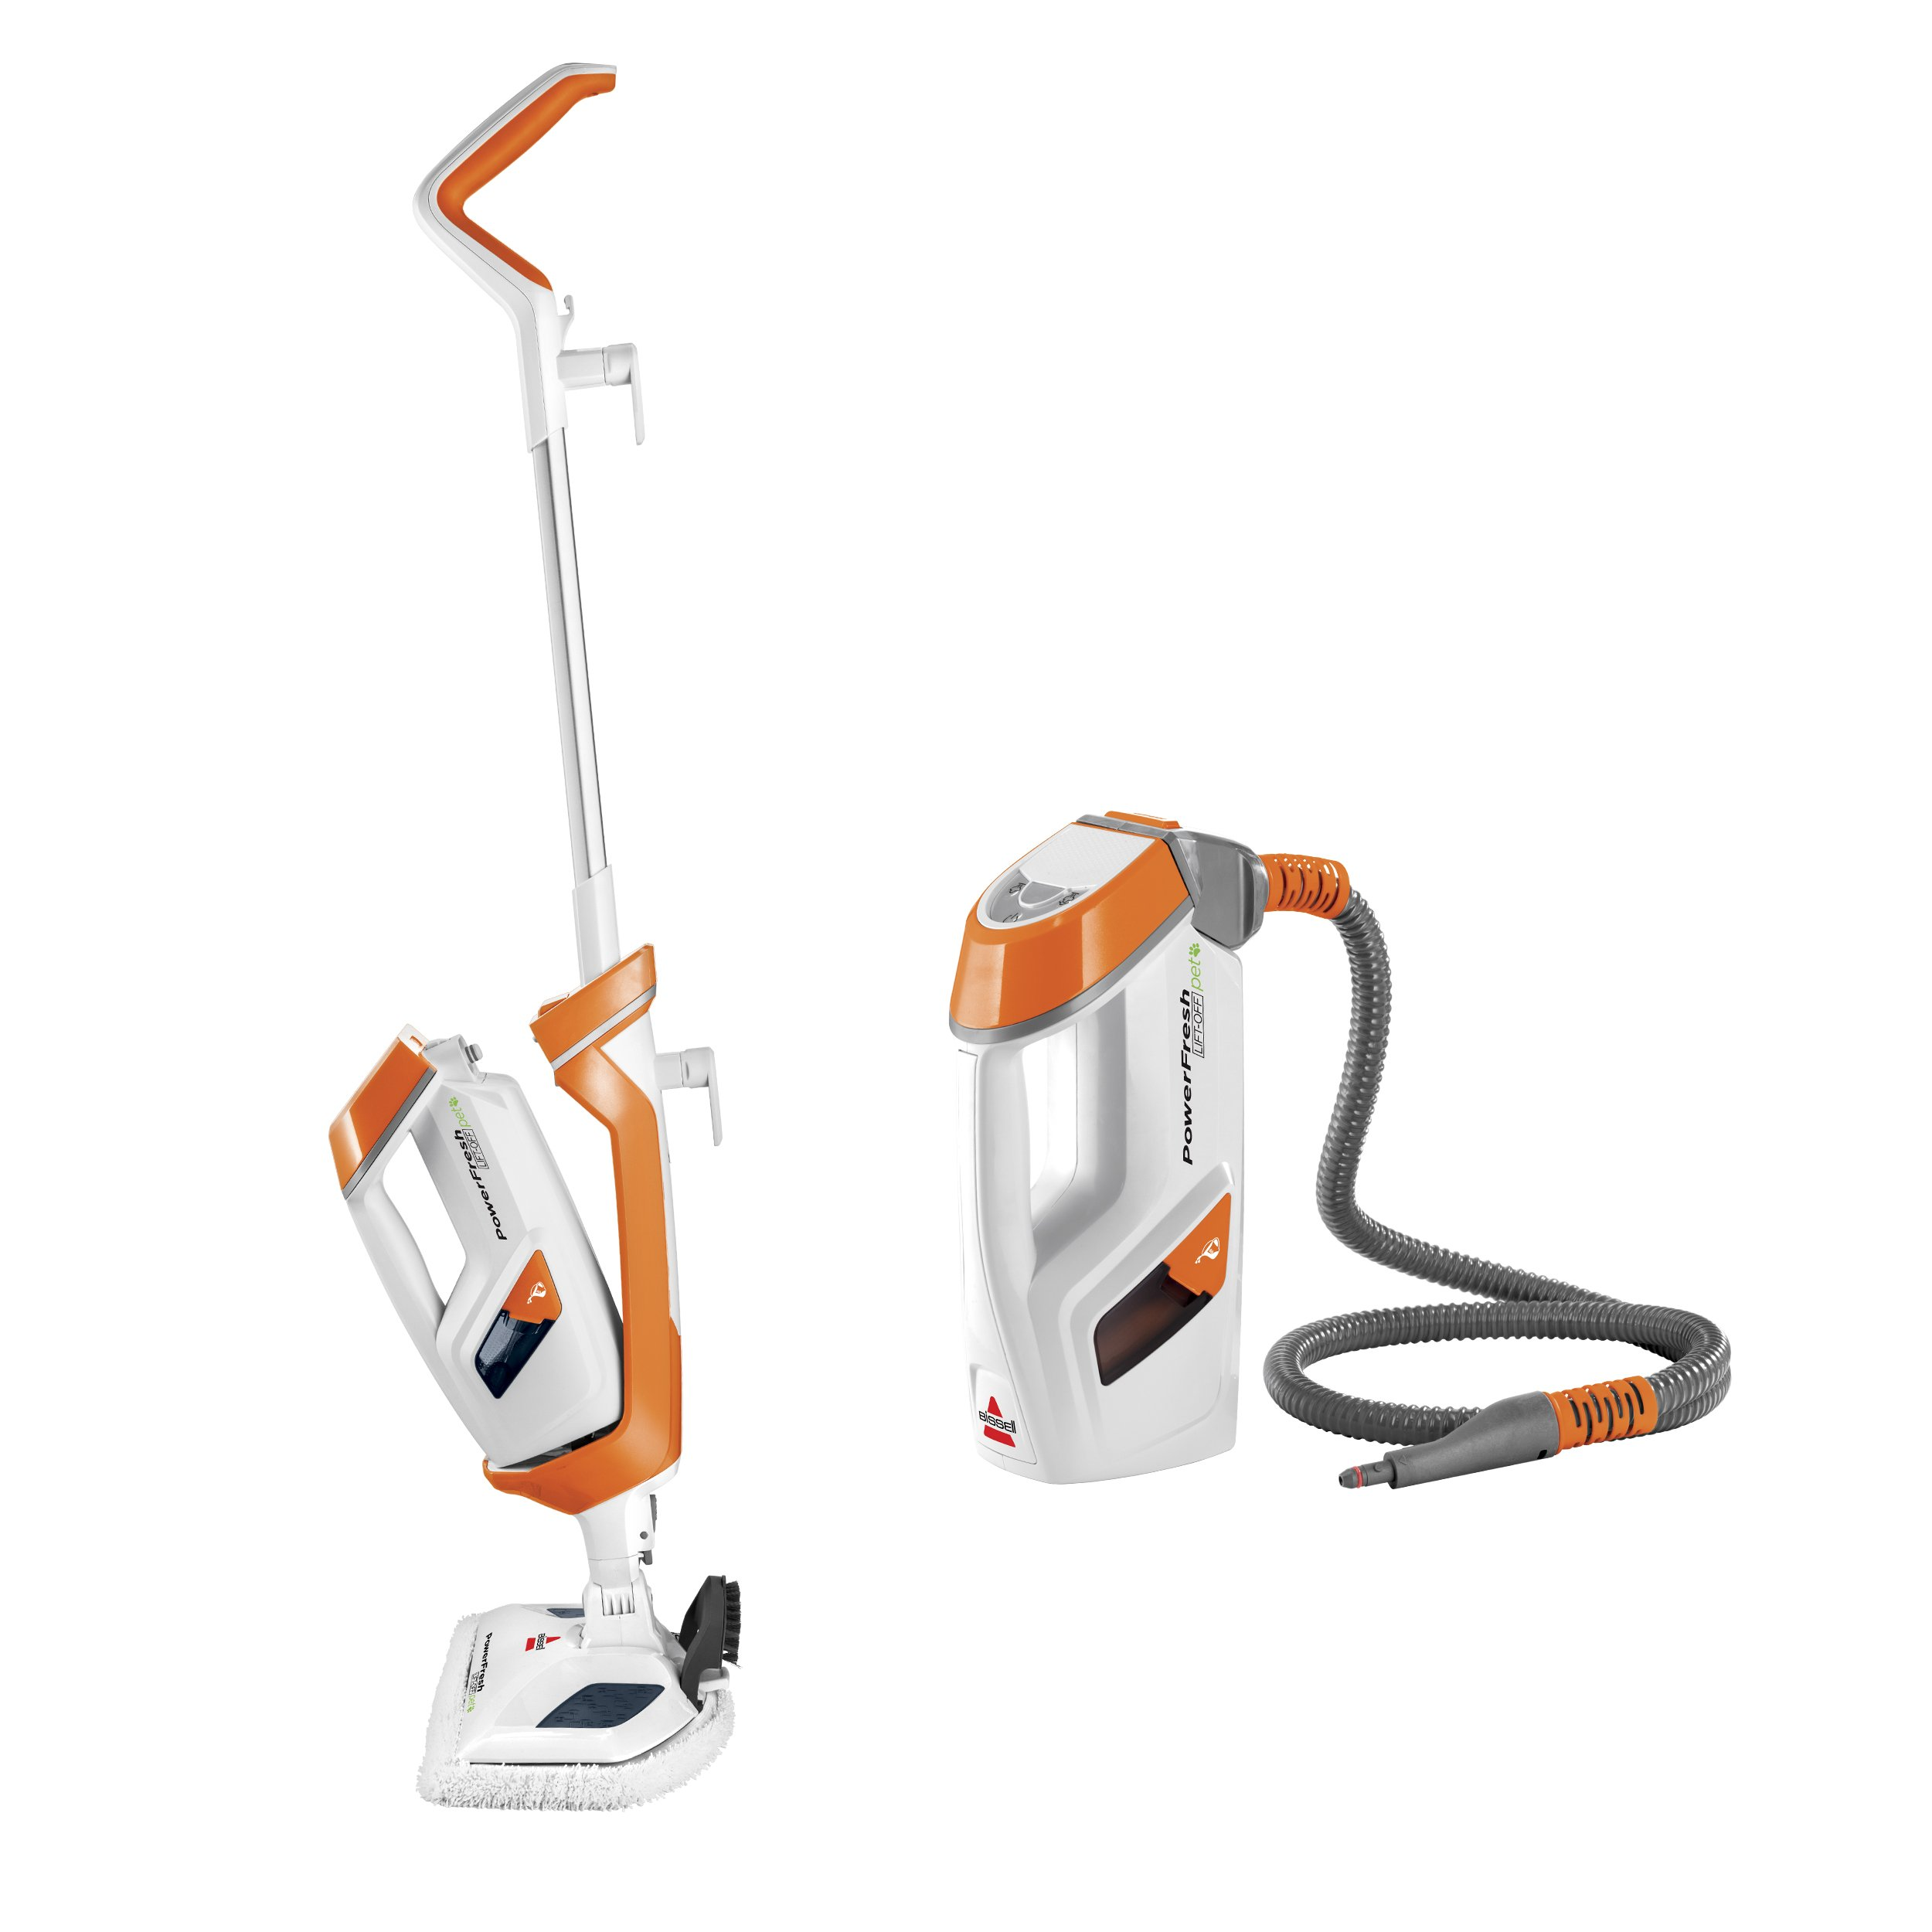 13 Best Steam Cleaners For Hardwood Floors In 2019